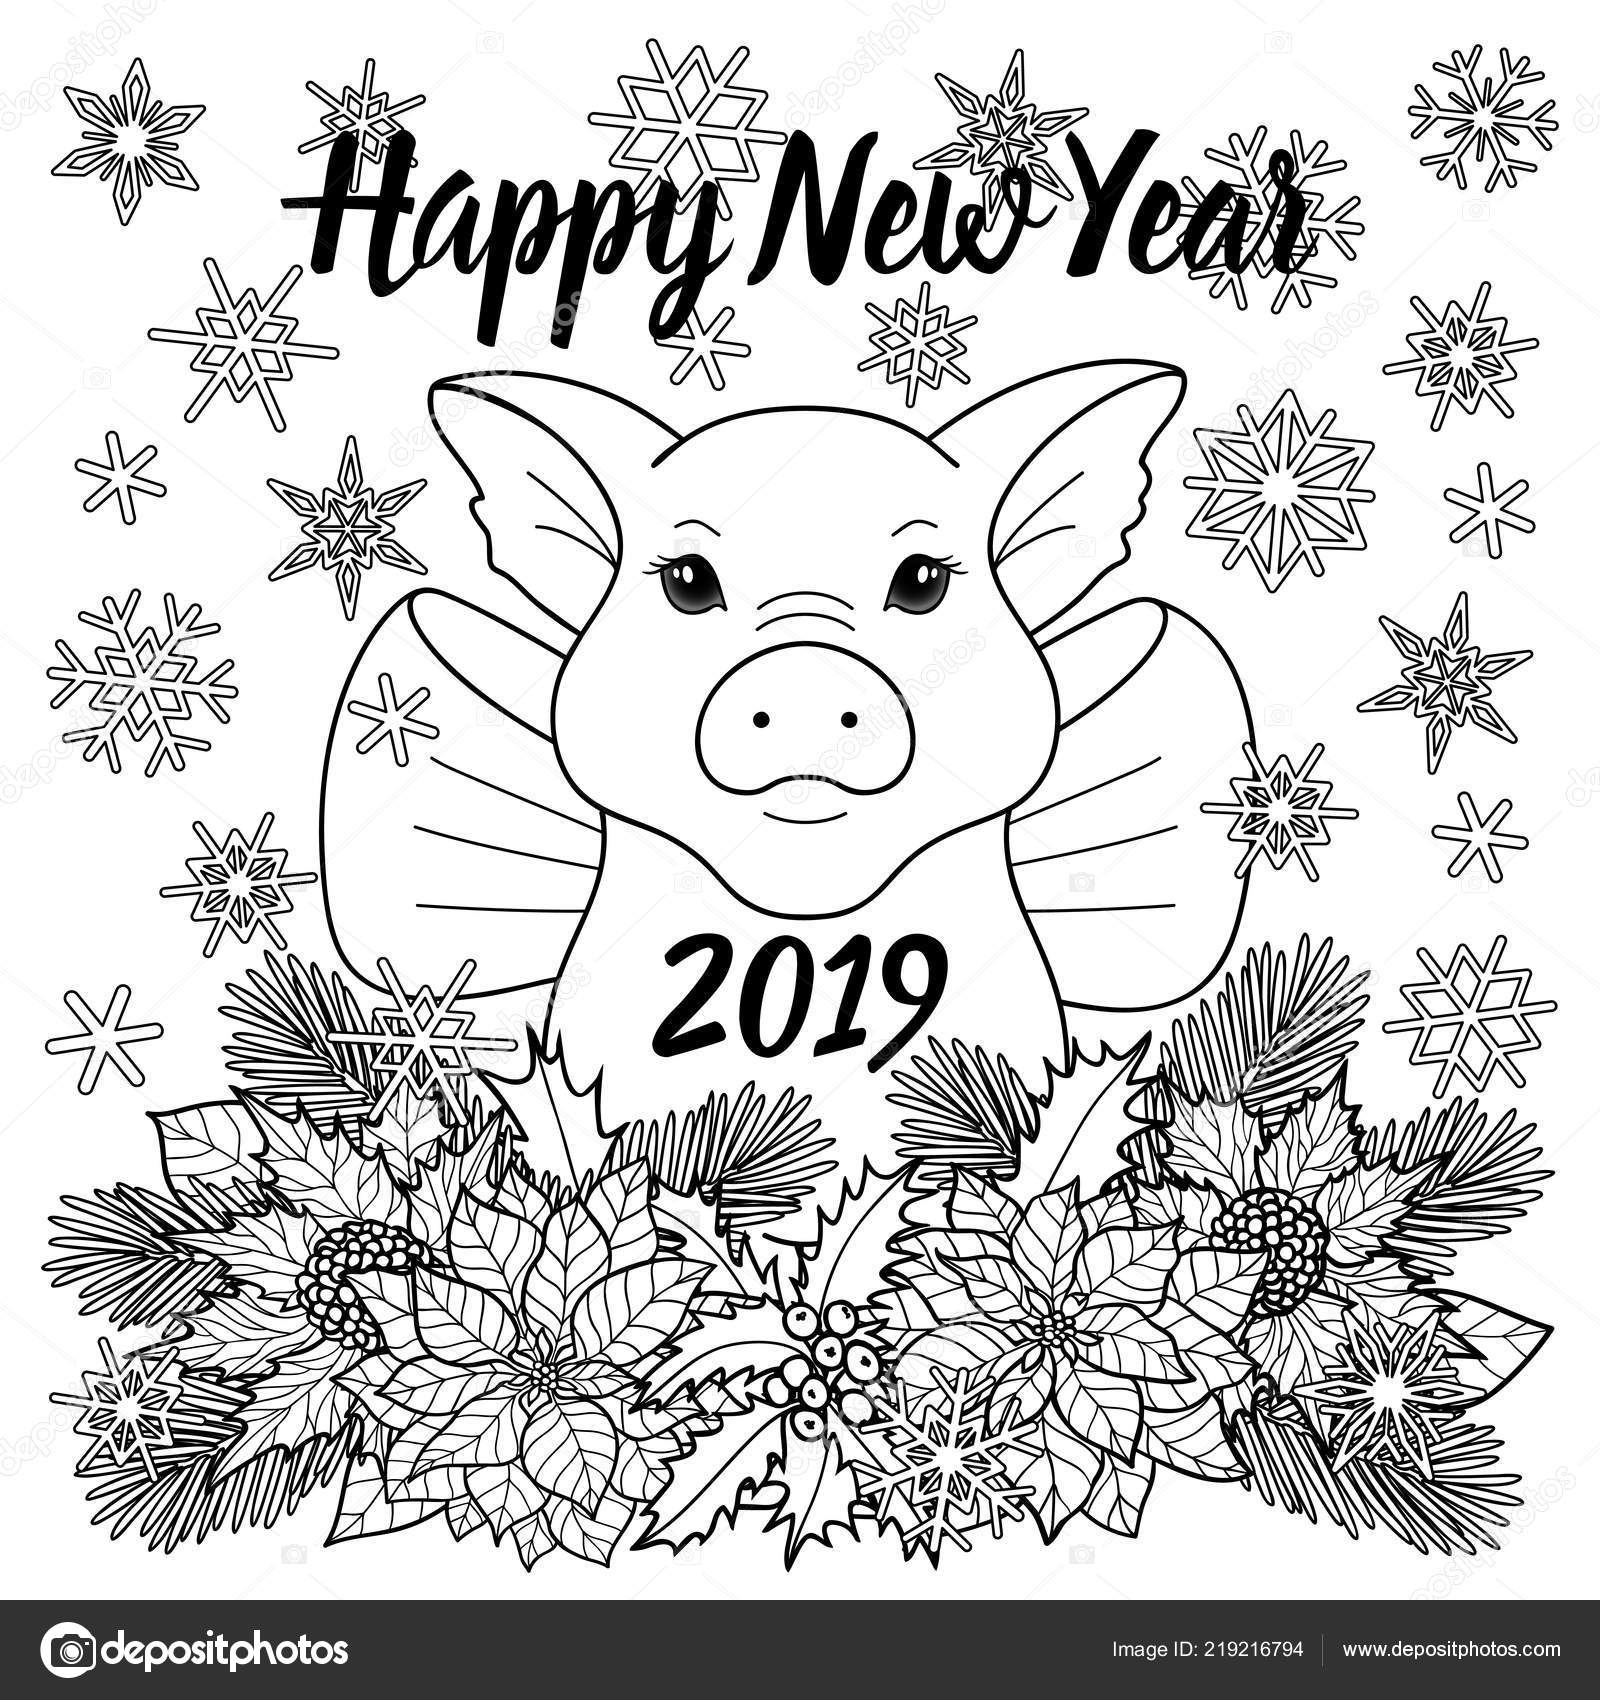 Happy New Year 2019 Greeting Card With Pig Stock Vector C Kronalux